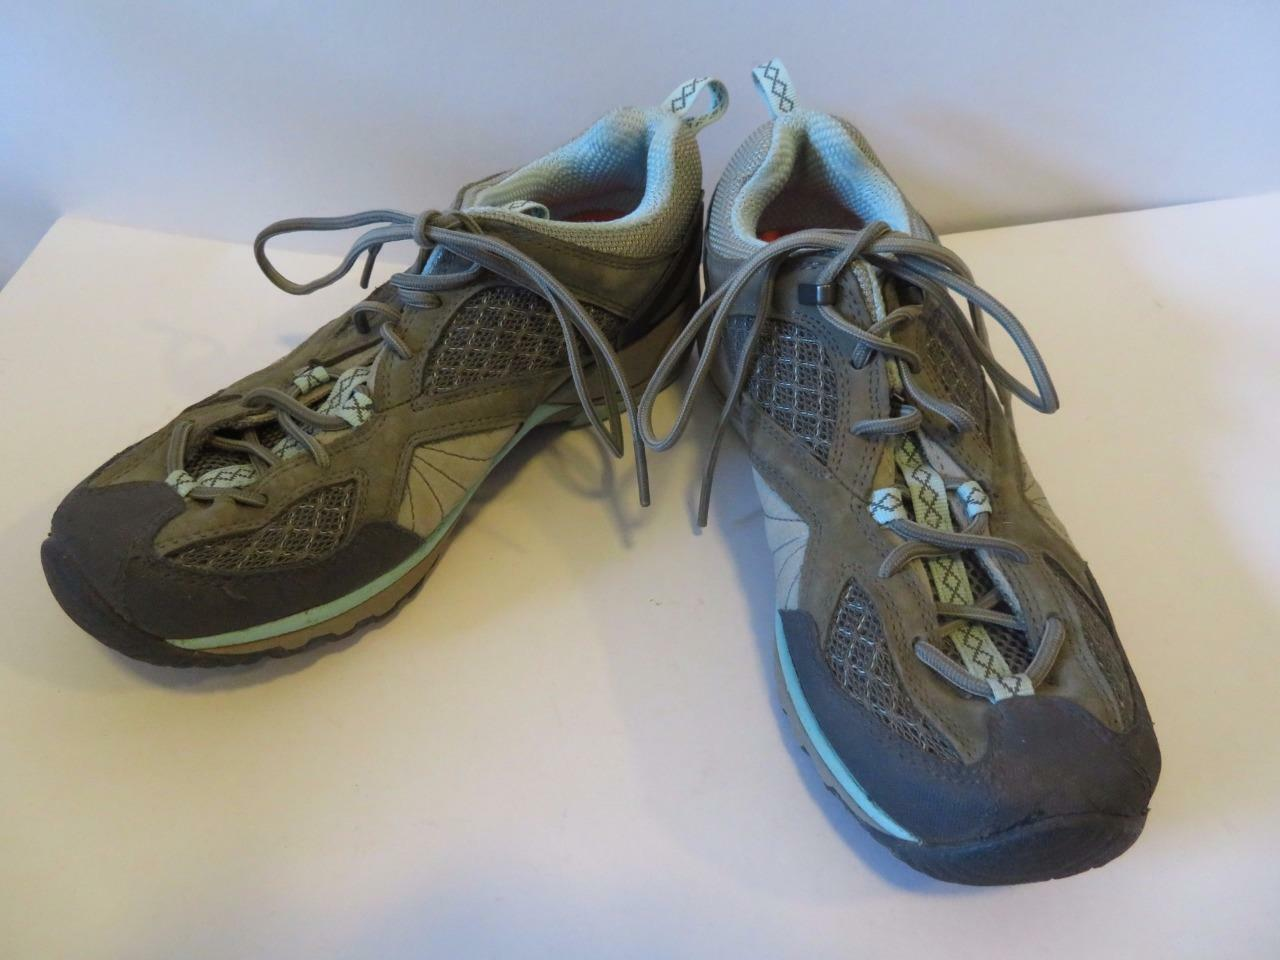 WOMENS MERRELL ORTHOLITE SNEAKERS AIRCUSHION GRAY,BLUE SNEAKERS ORTHOLITE SIZE 7.5 d59220